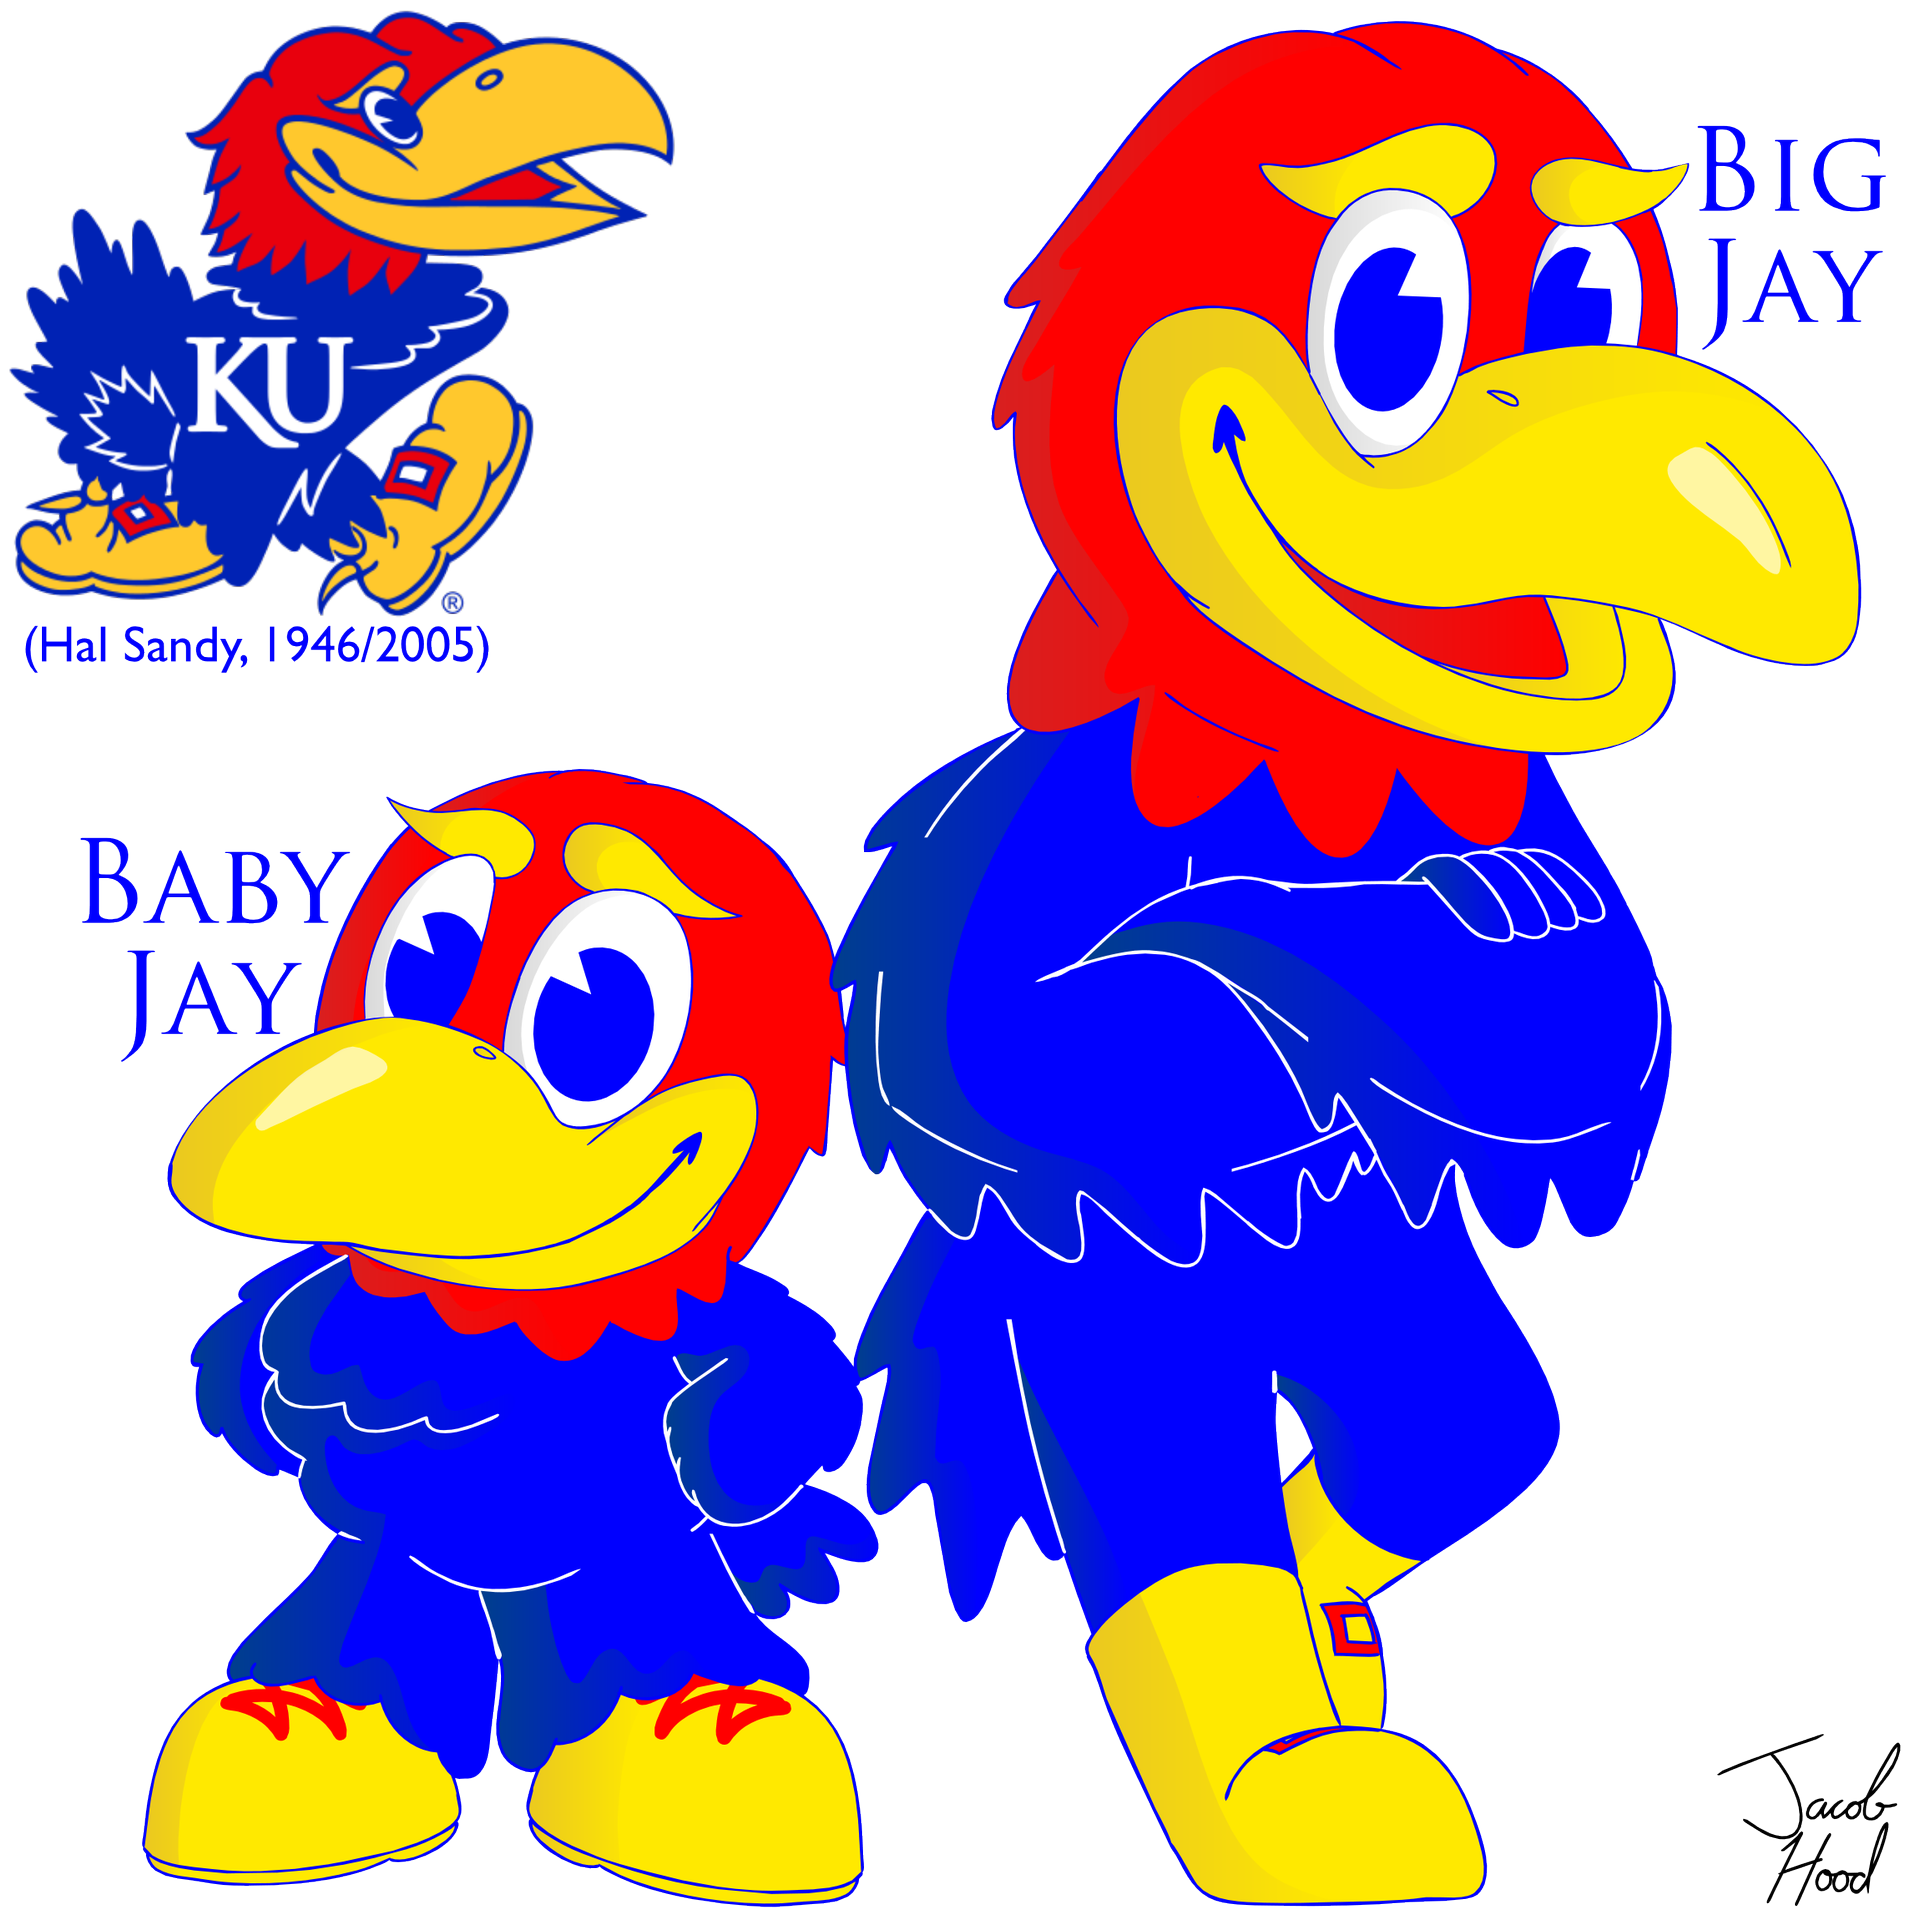 KU Big Jay & Baby Jay - University of Kansas Jayhawk Mascots (Hal Sandy, 1946/2005)